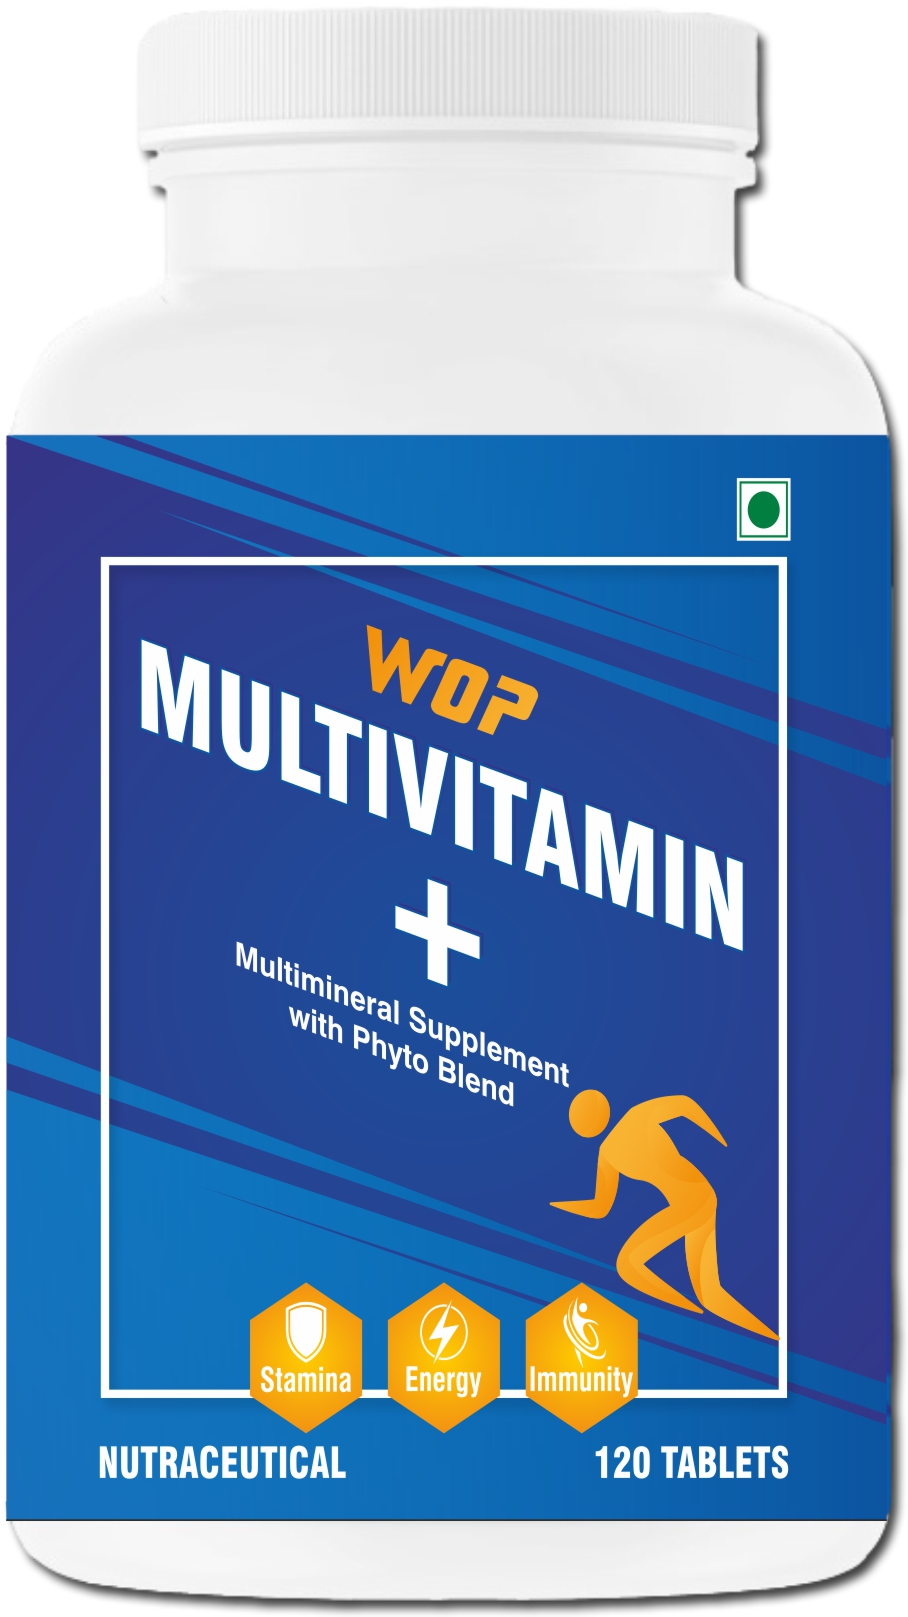 WOP Multivitamin Plus,120-tablets unflavoured